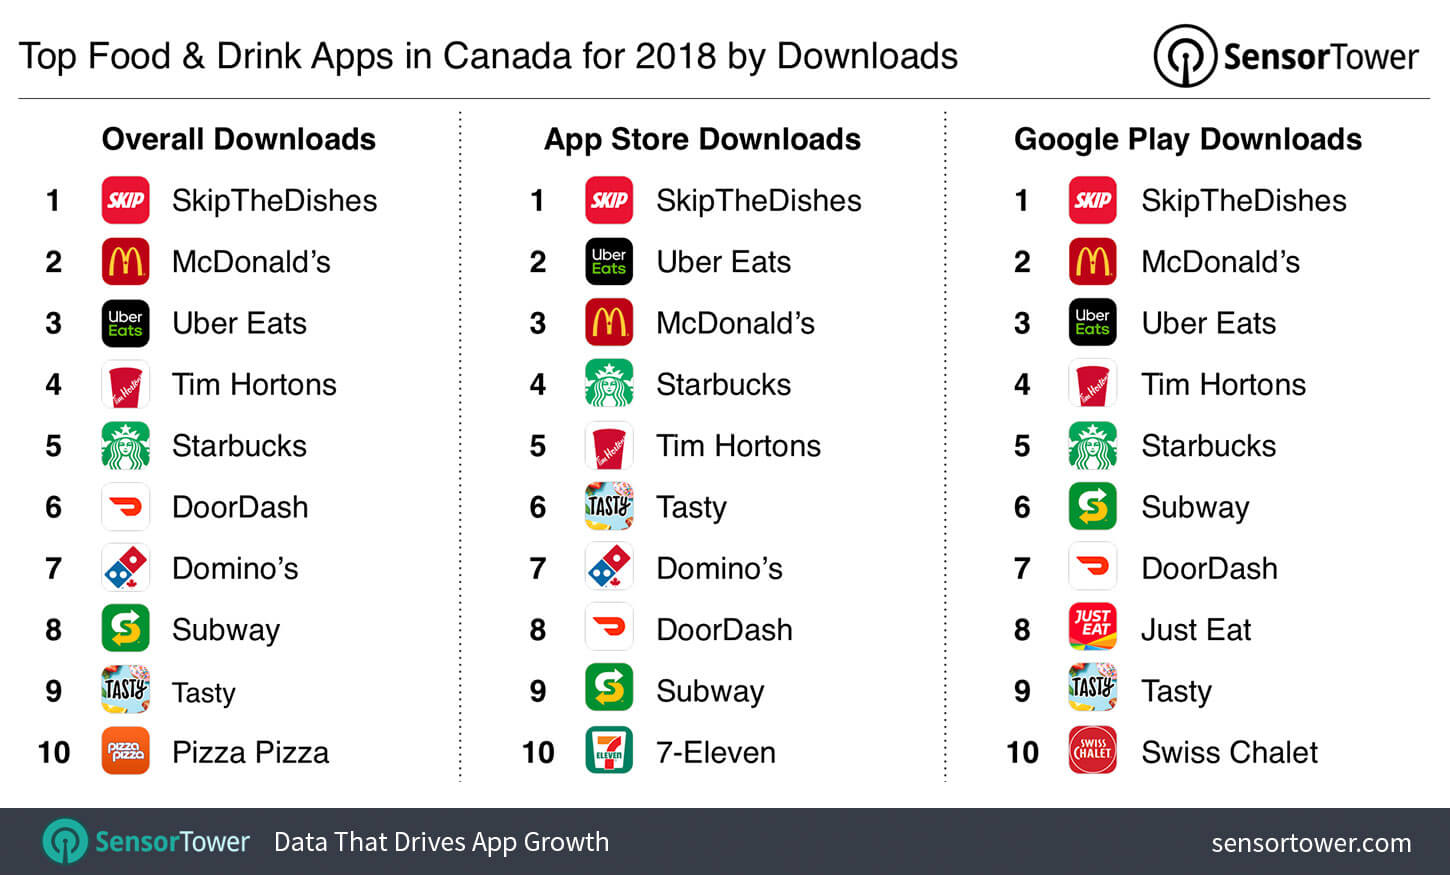 top-food-drink-apps-canada-2018-downloads